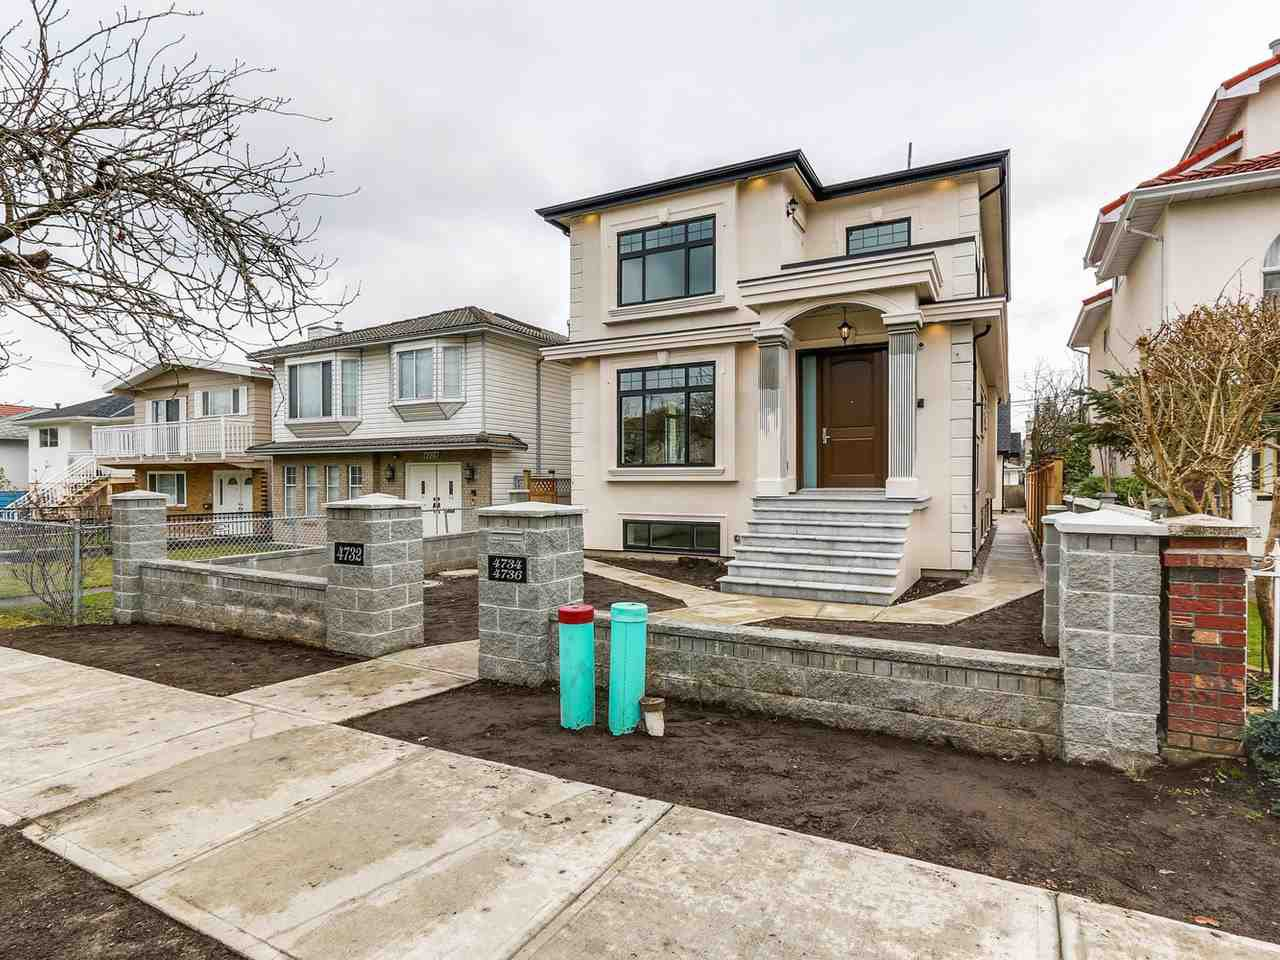 Main Photo: 4732 BRUCE Street in Vancouver: Victoria VE House for sale (Vancouver East)  : MLS®# R2141545